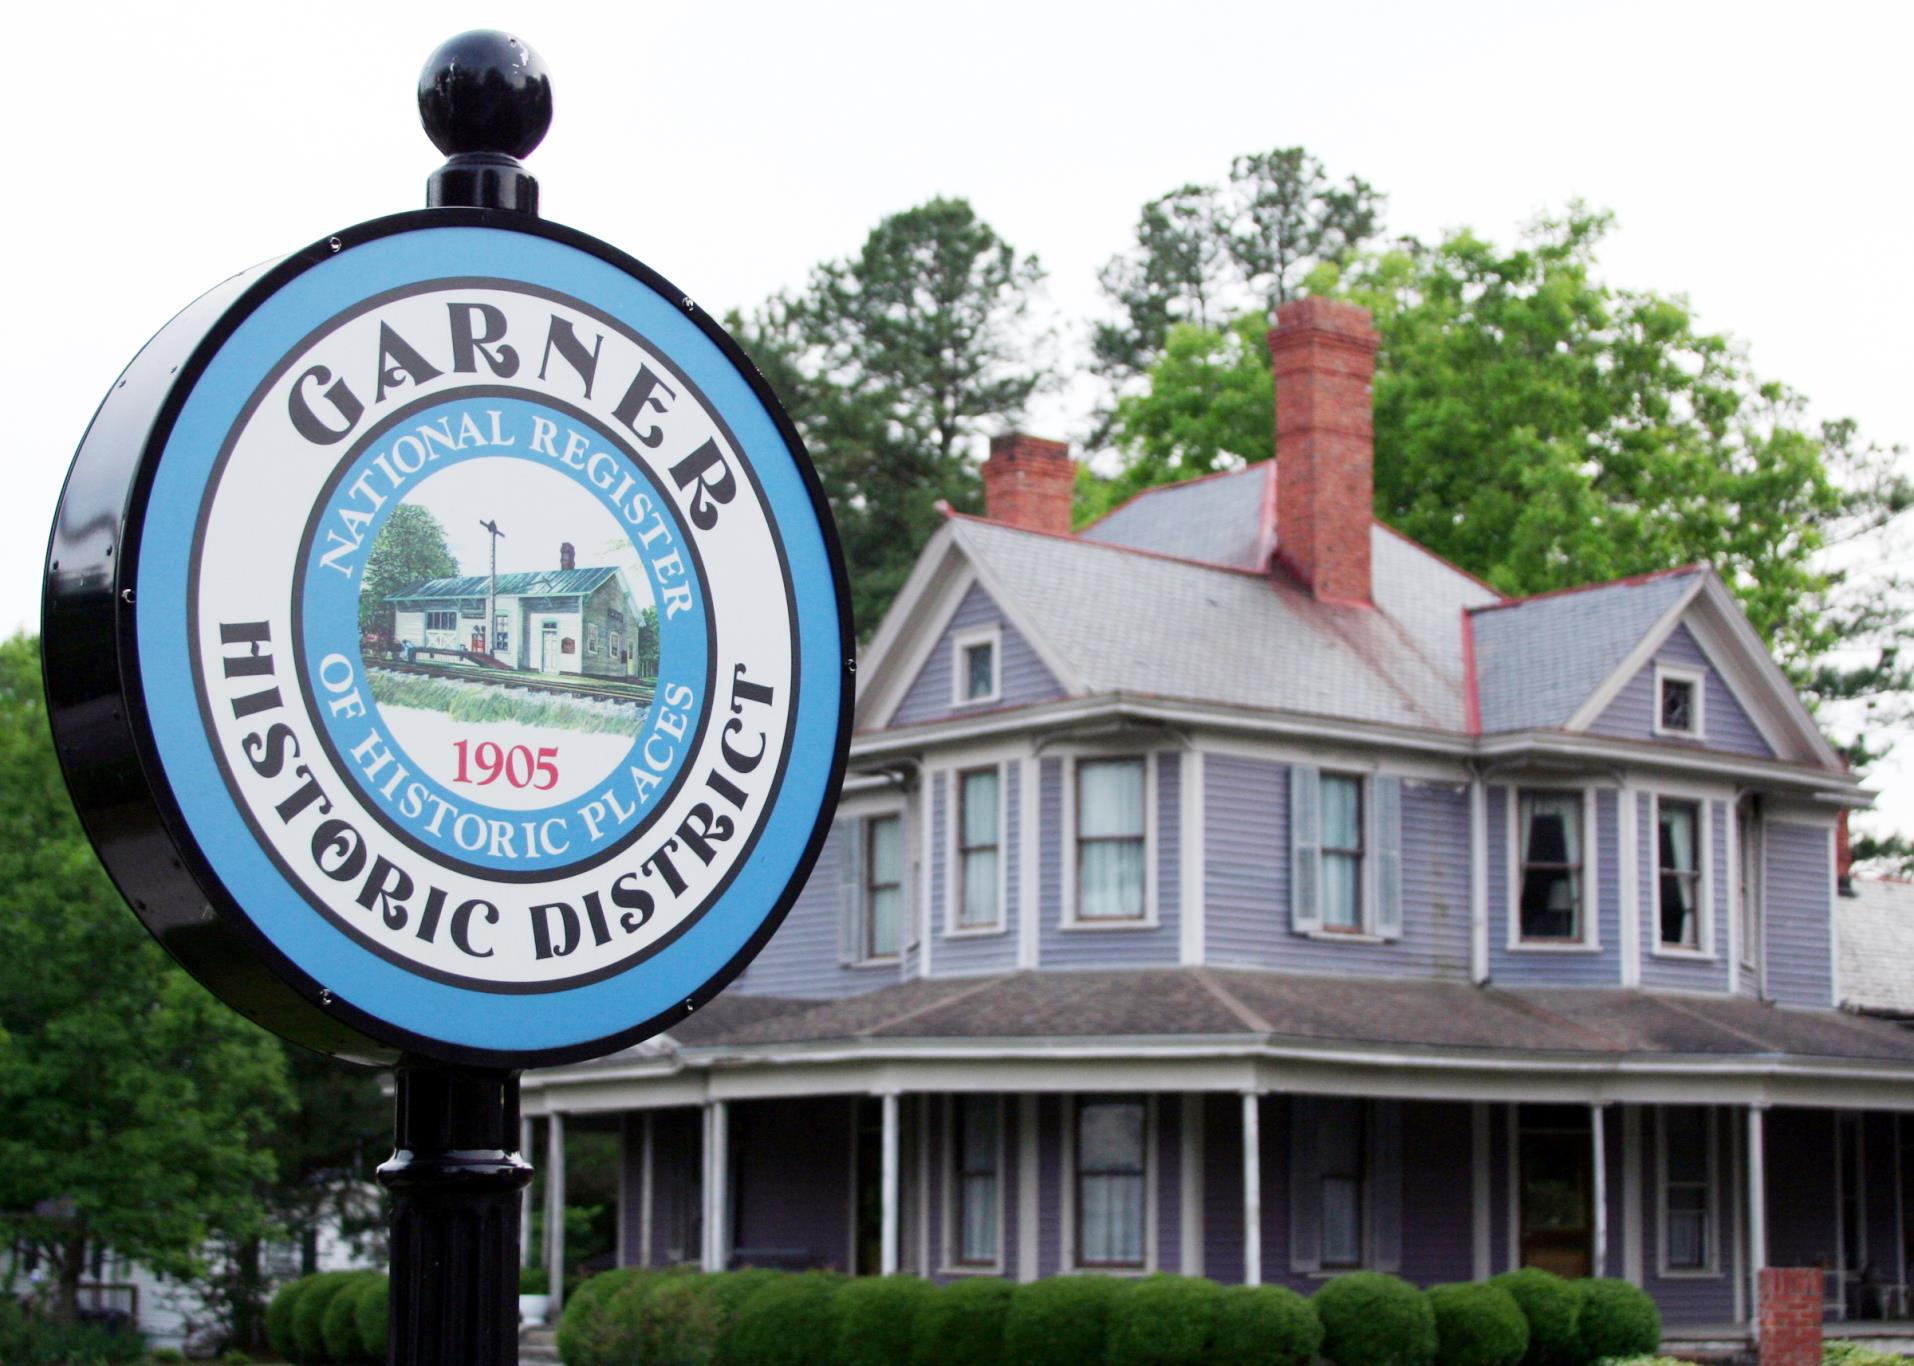 Garner Historic District